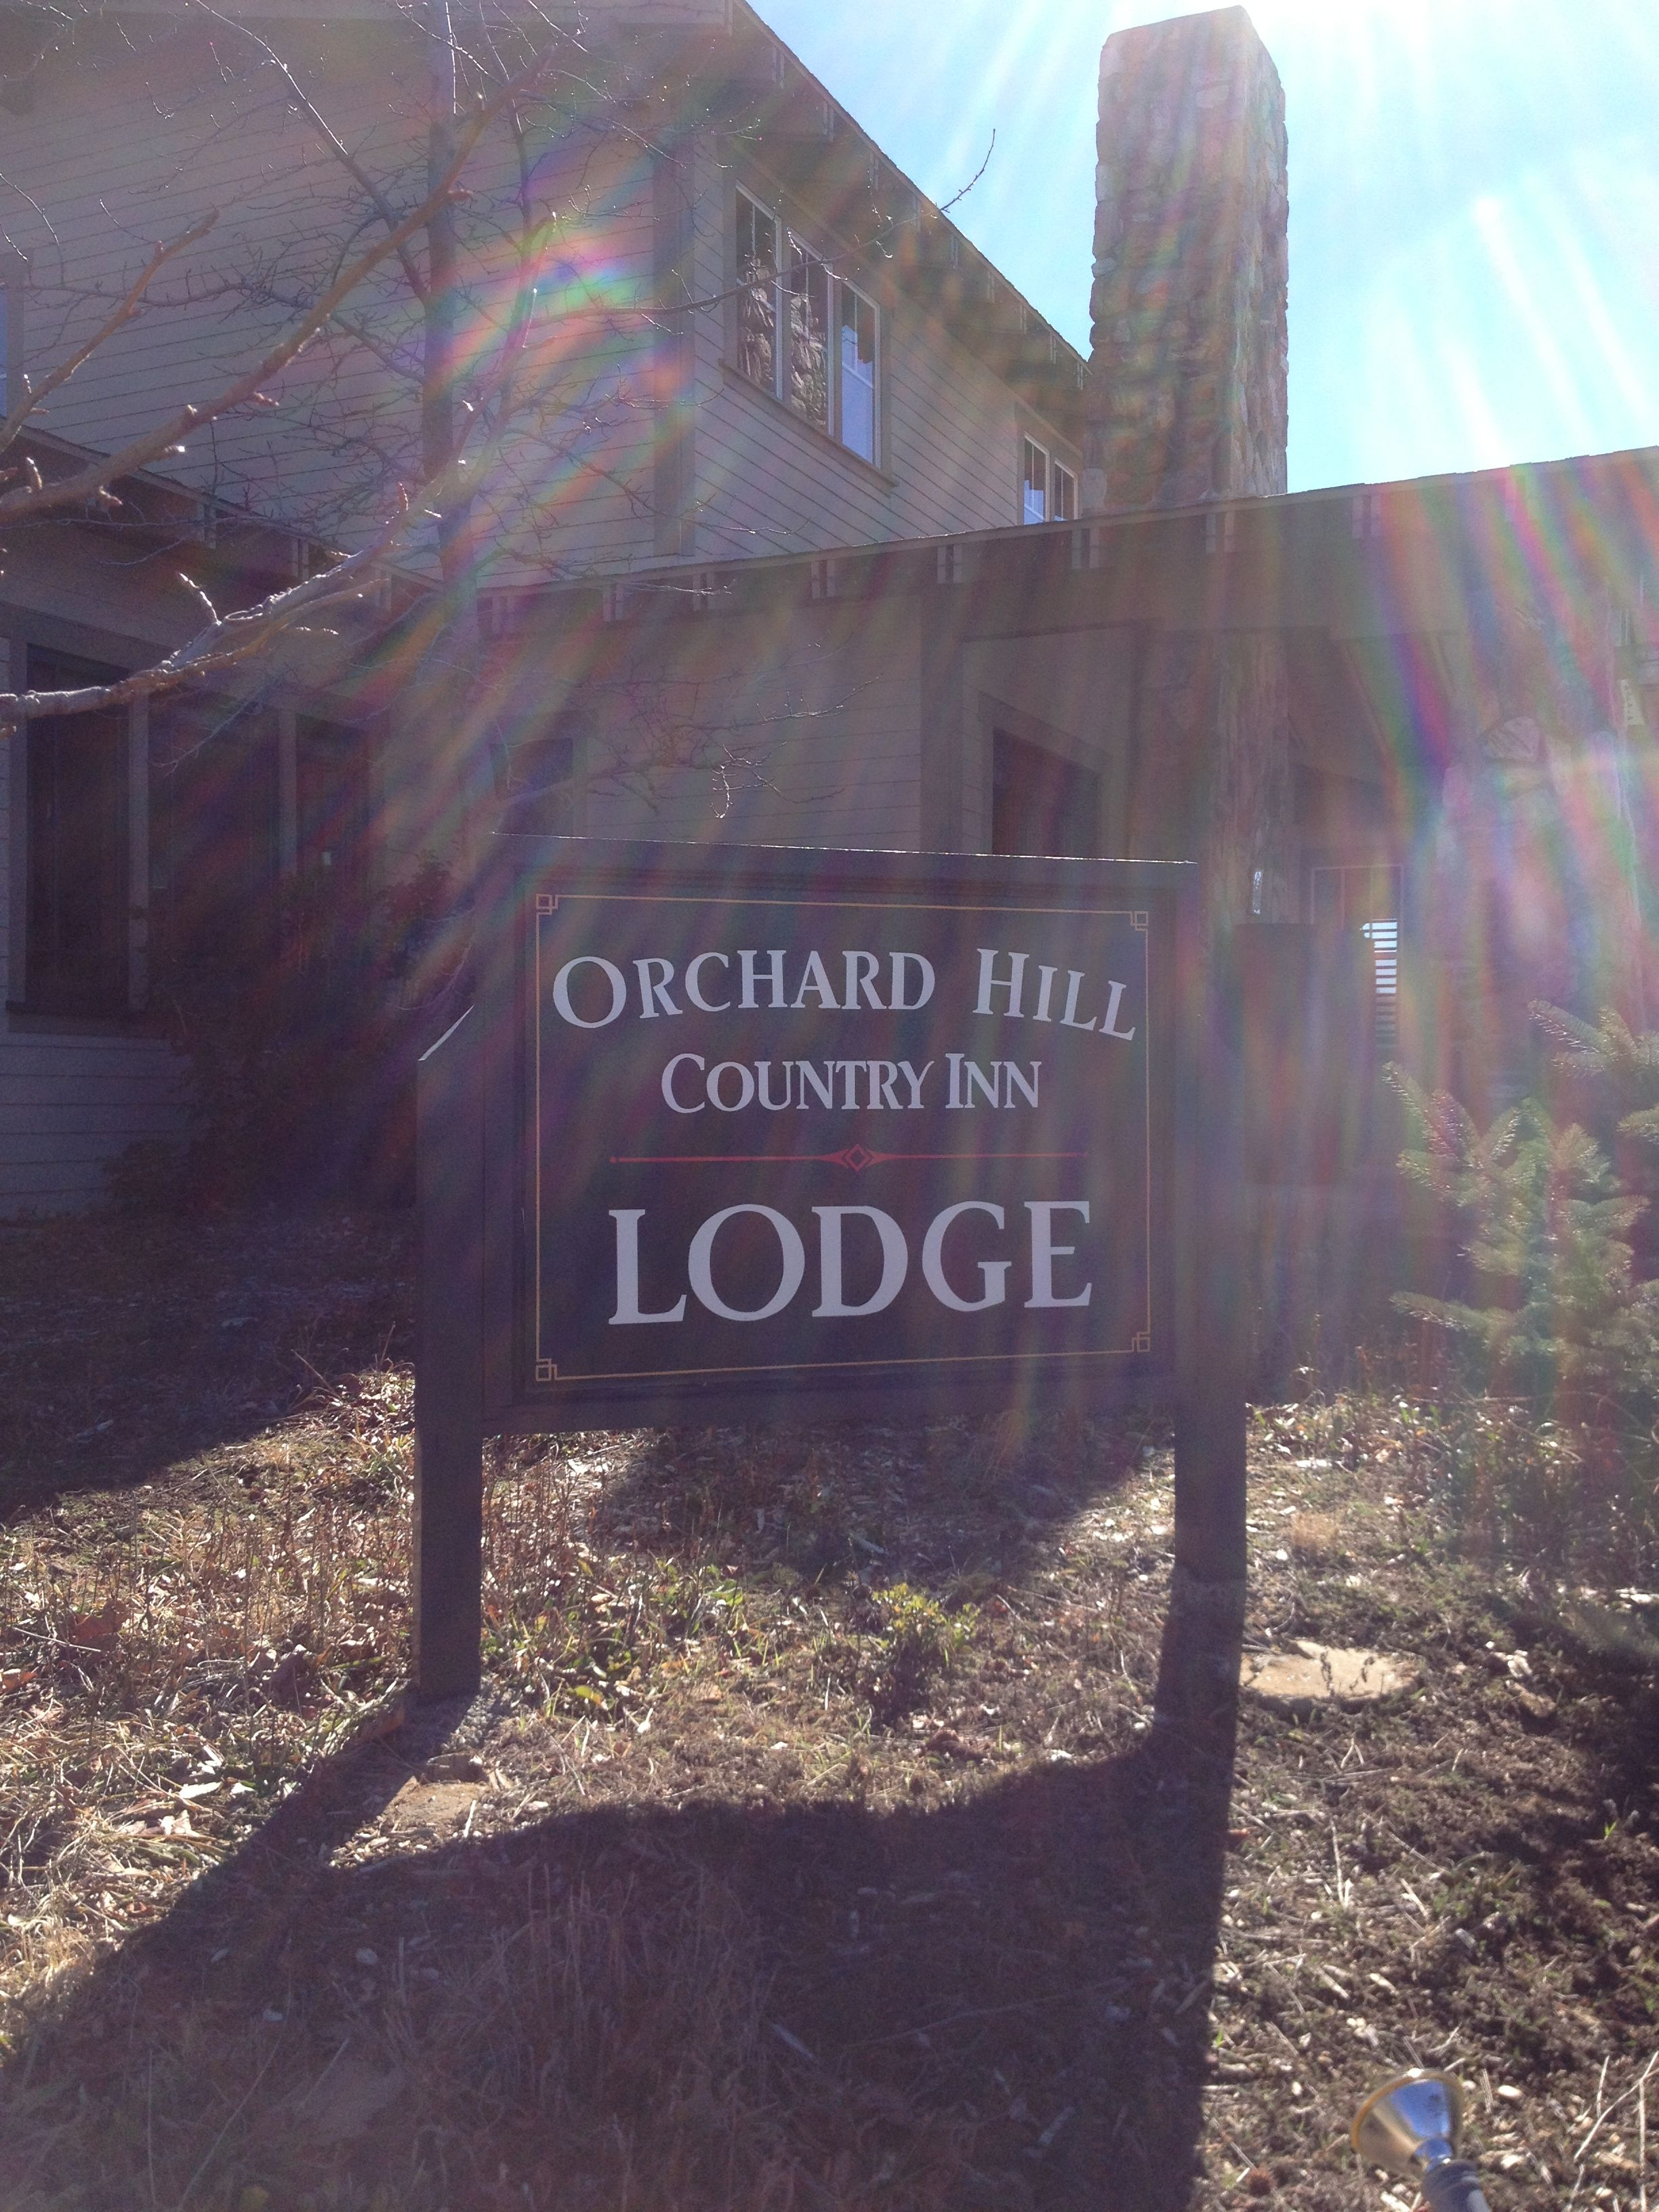 Orchard hill inn julian california fabulous places to stay